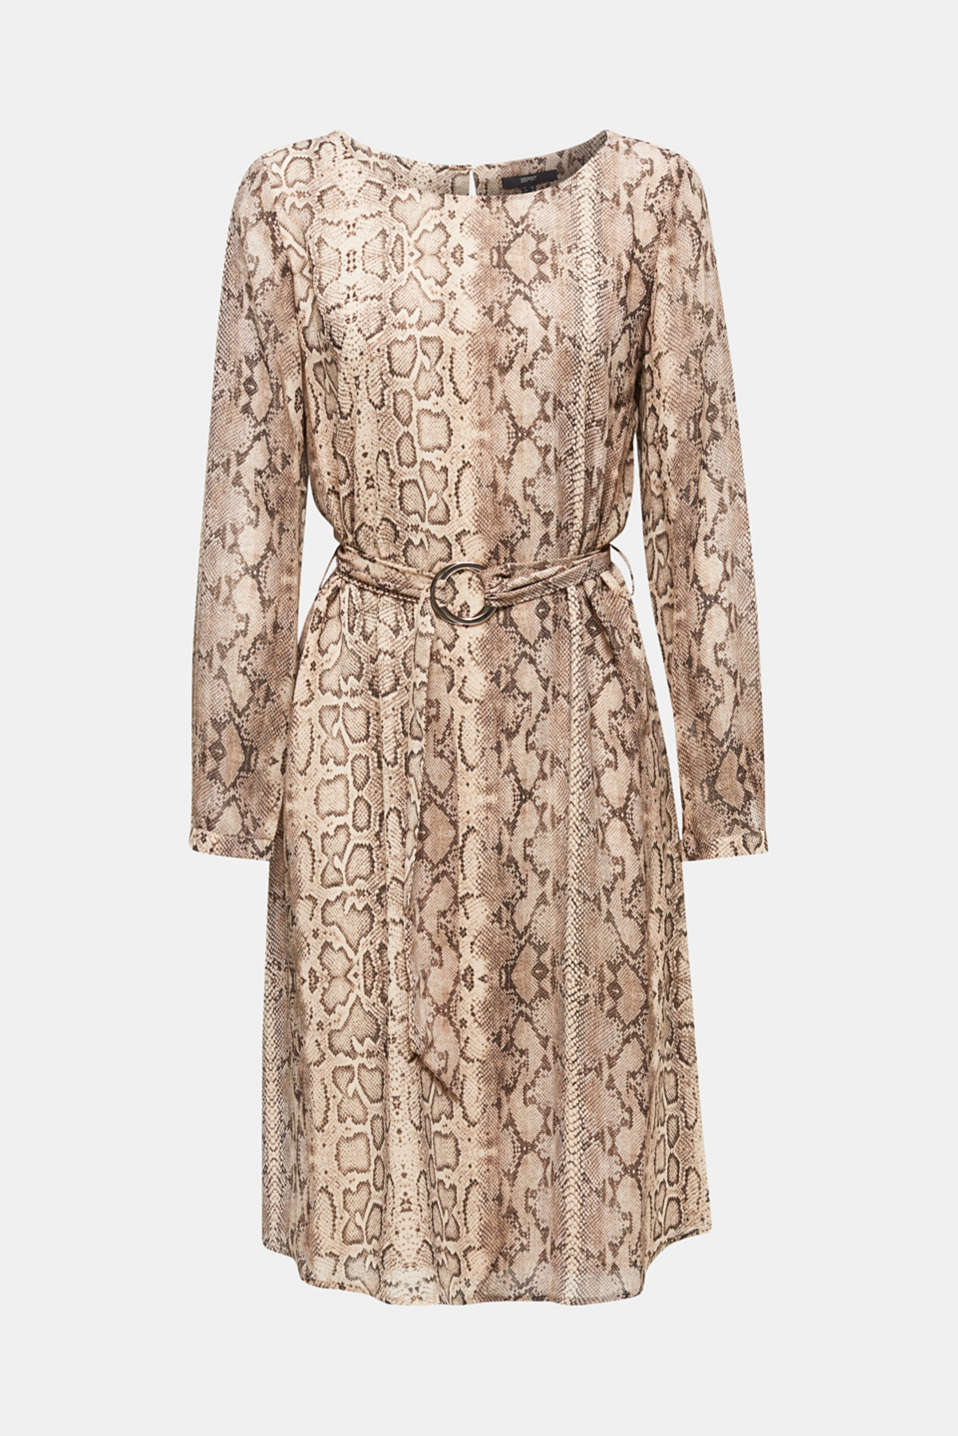 Chiffon dress with a snakeskin print and belt, LIGHT TAUPE 4, detail image number 8